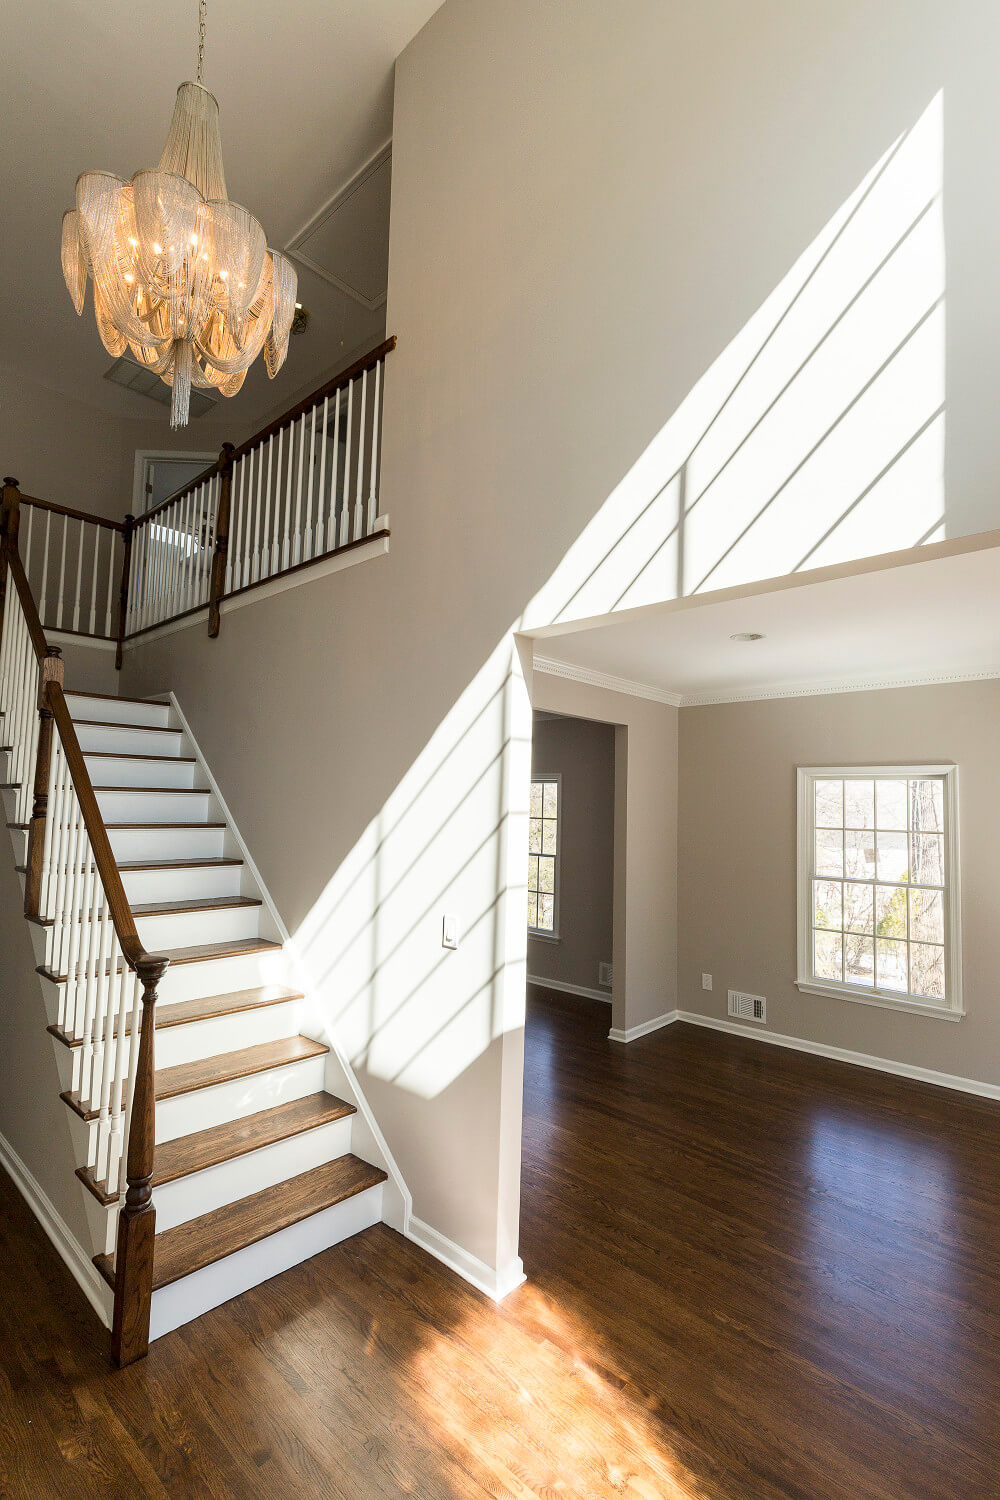 Image of completed Cedar Grove, NJ remodel